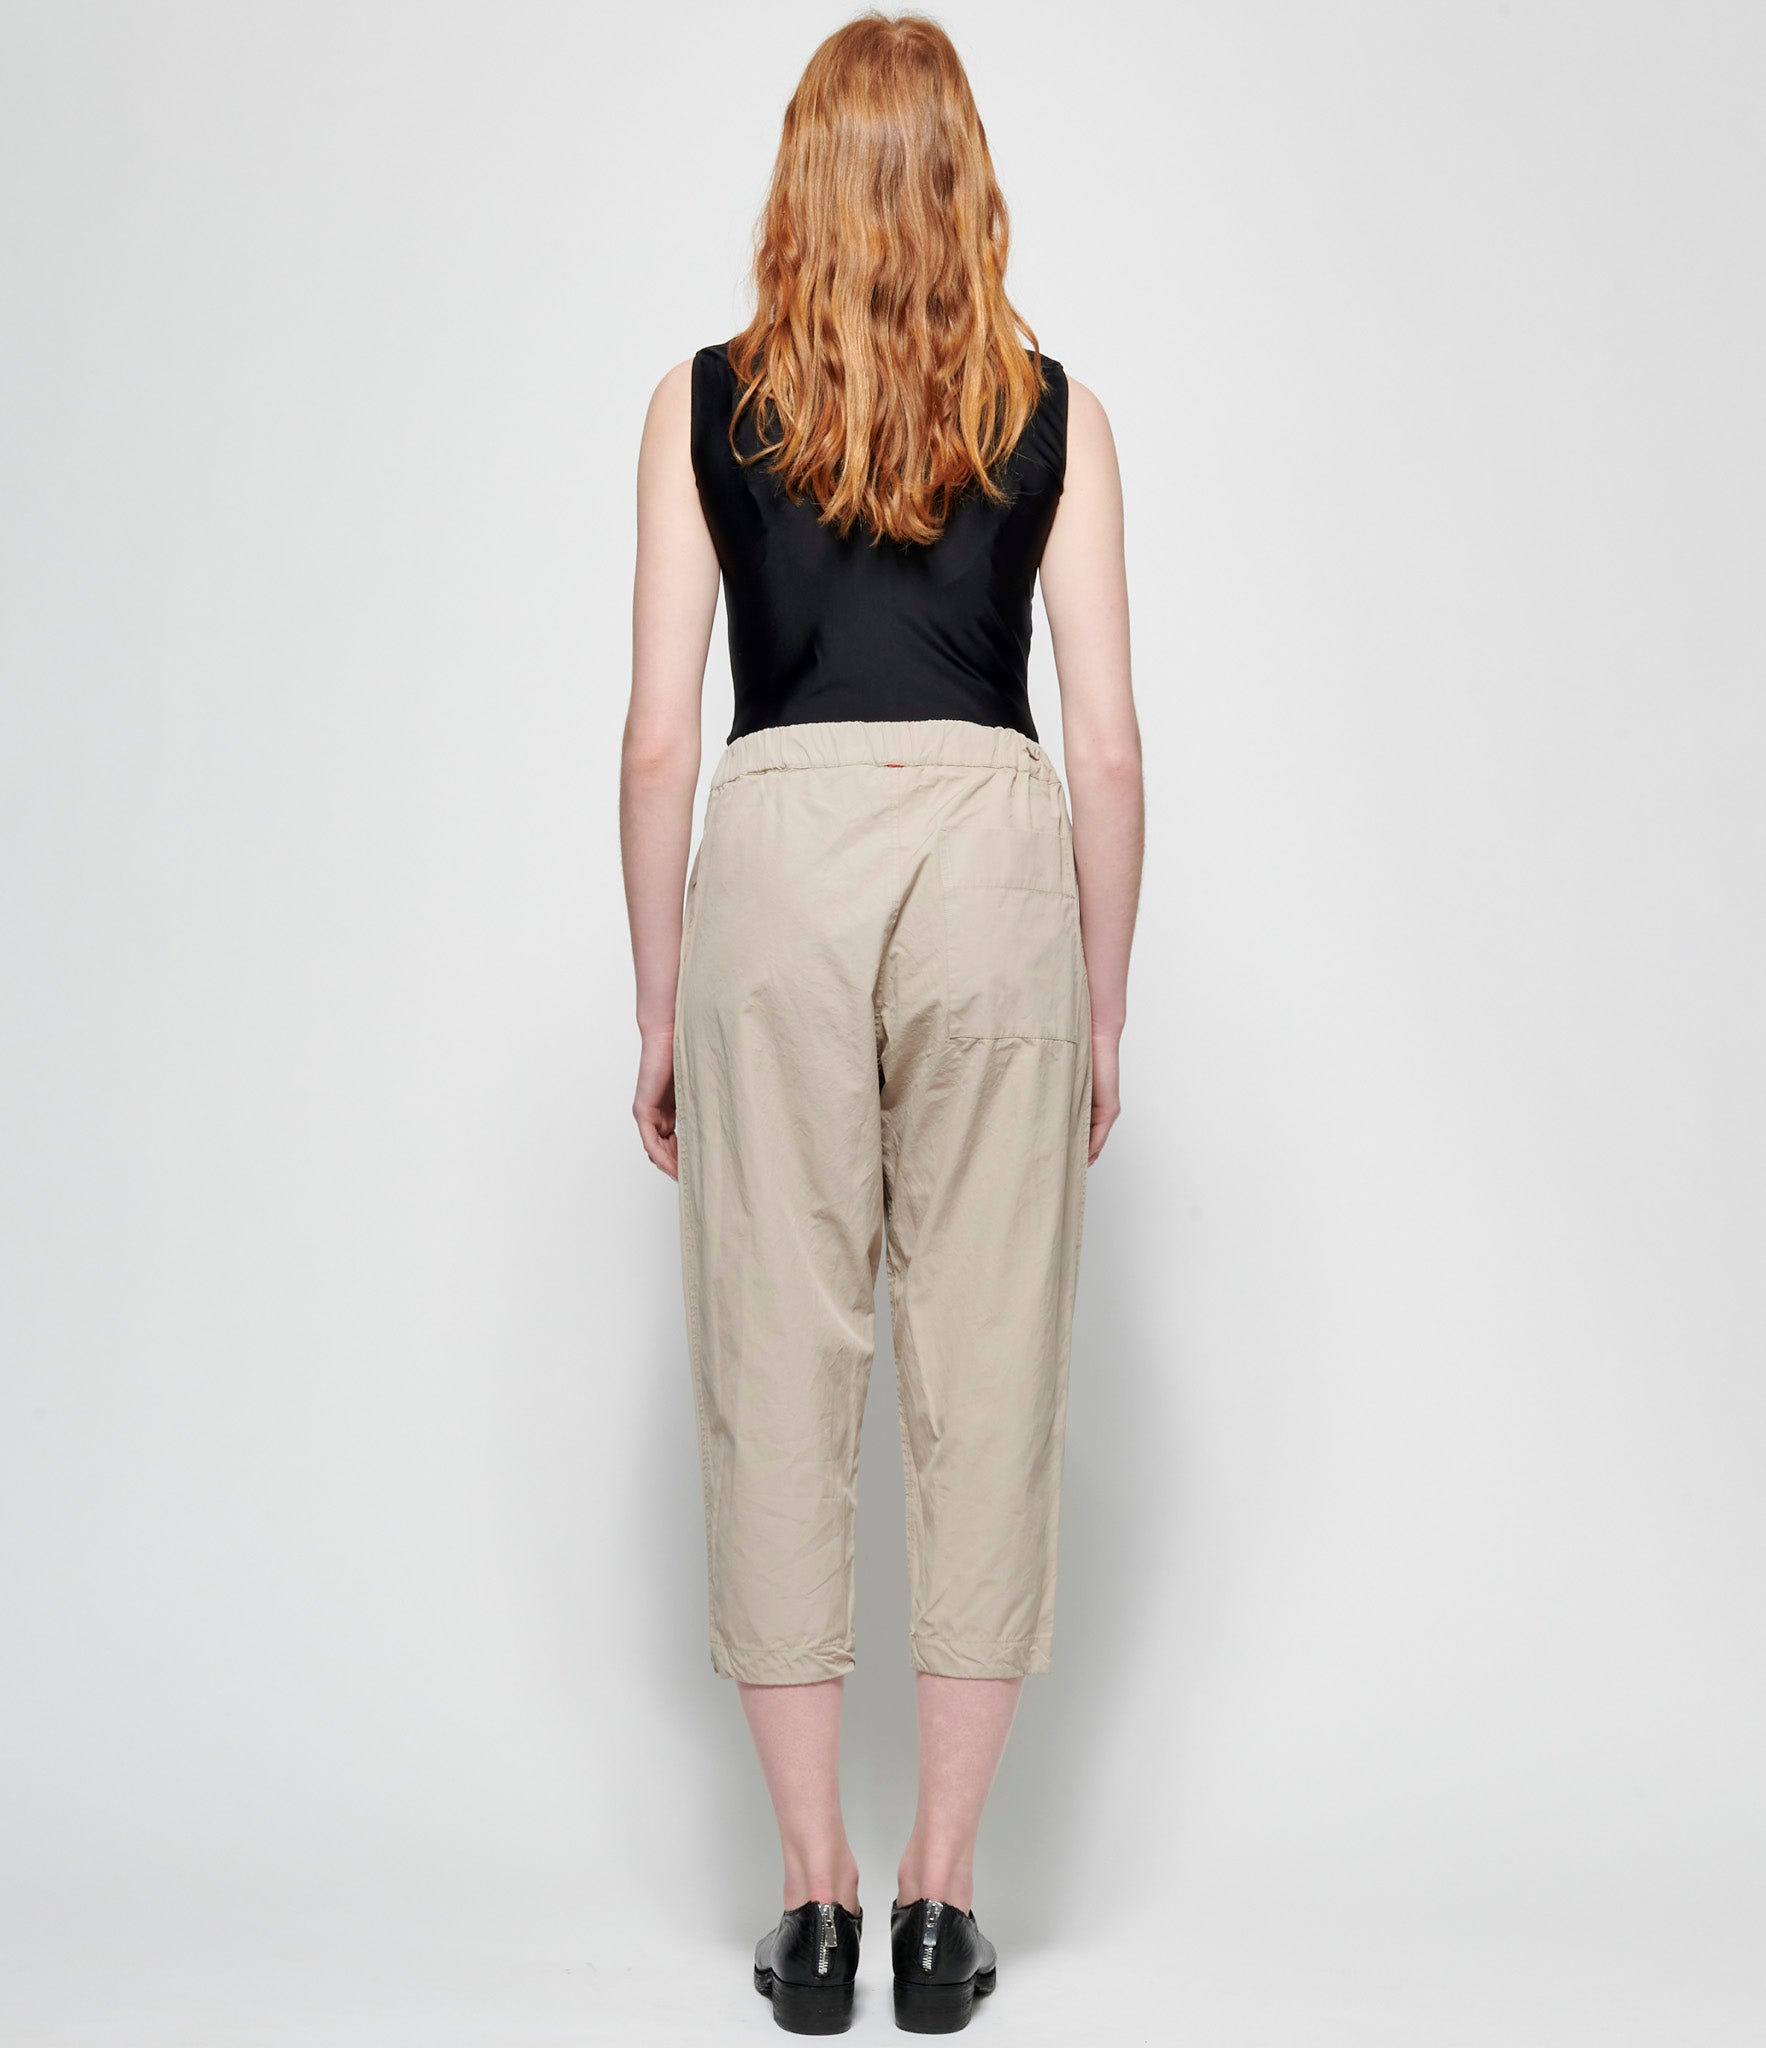 Casey Casey Art Verger Pants